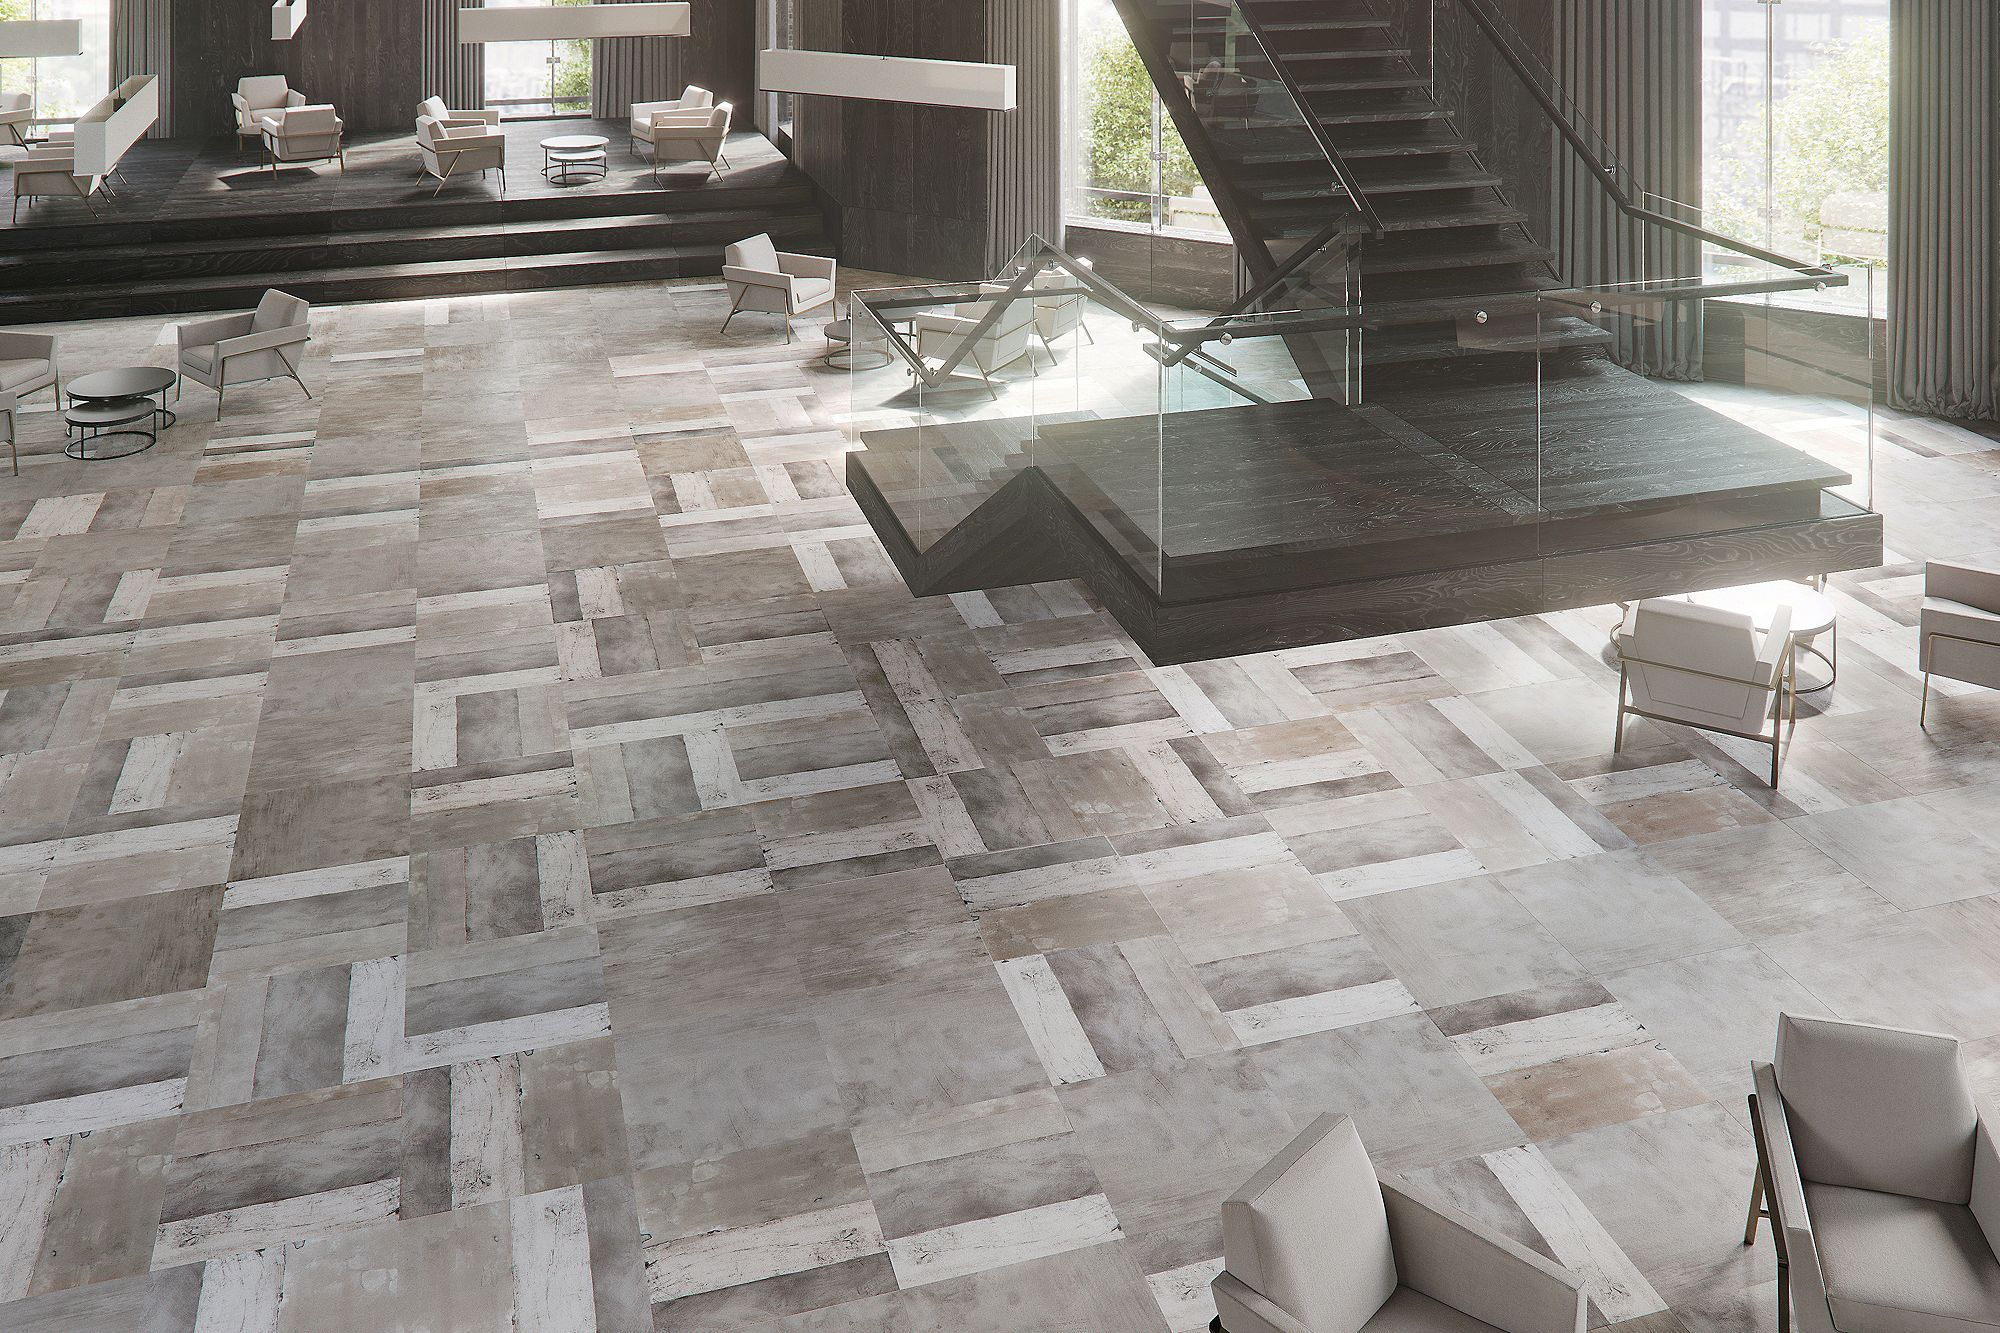 Mohawk Group Offers Both Hard And Soft Performance Flooring